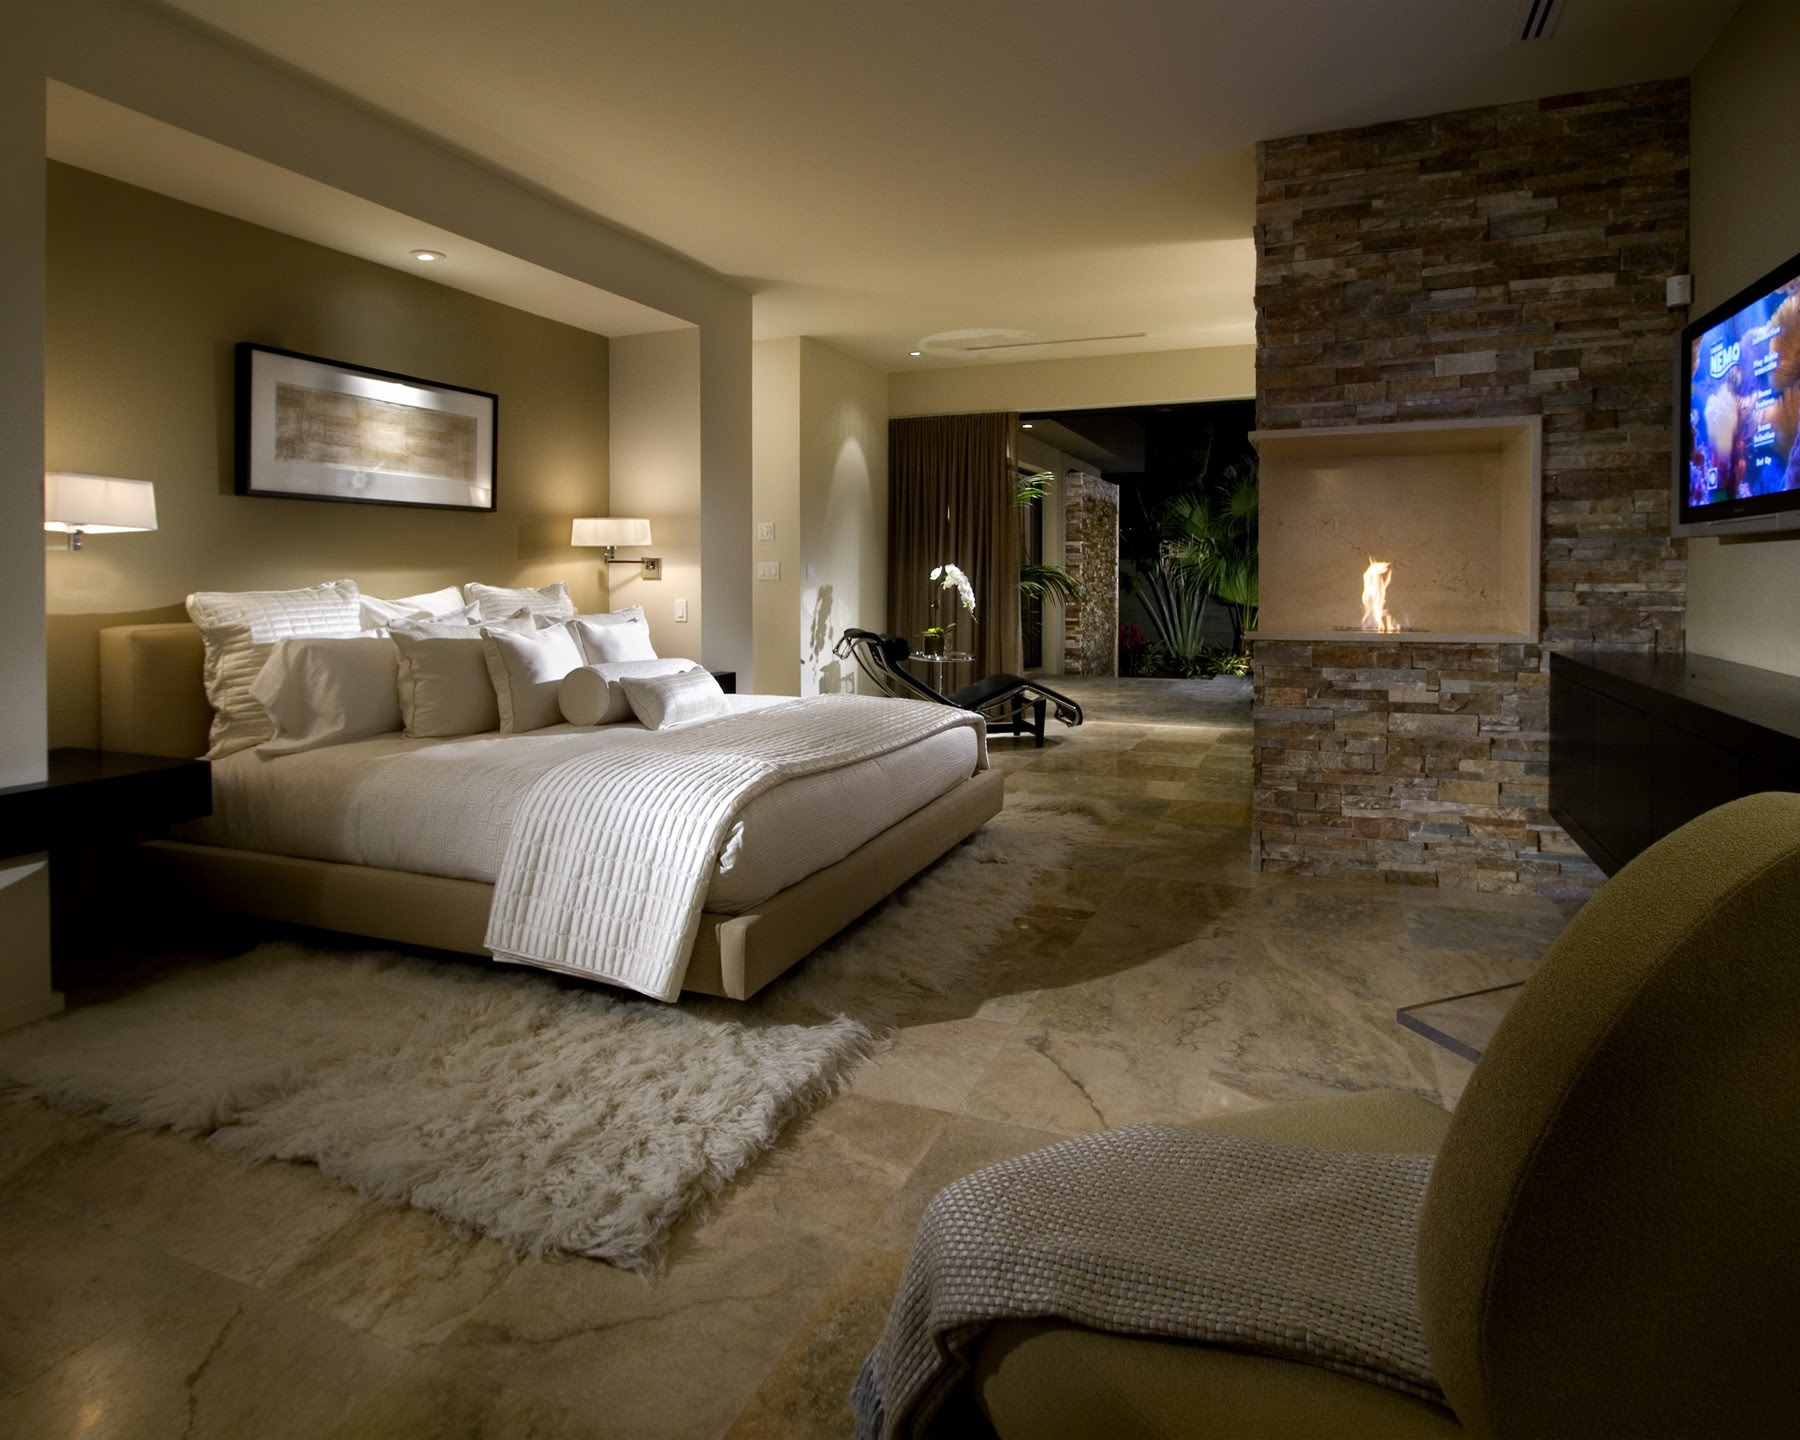 6 Bedrooms With Fireplaces - We Would Love to Wake Up